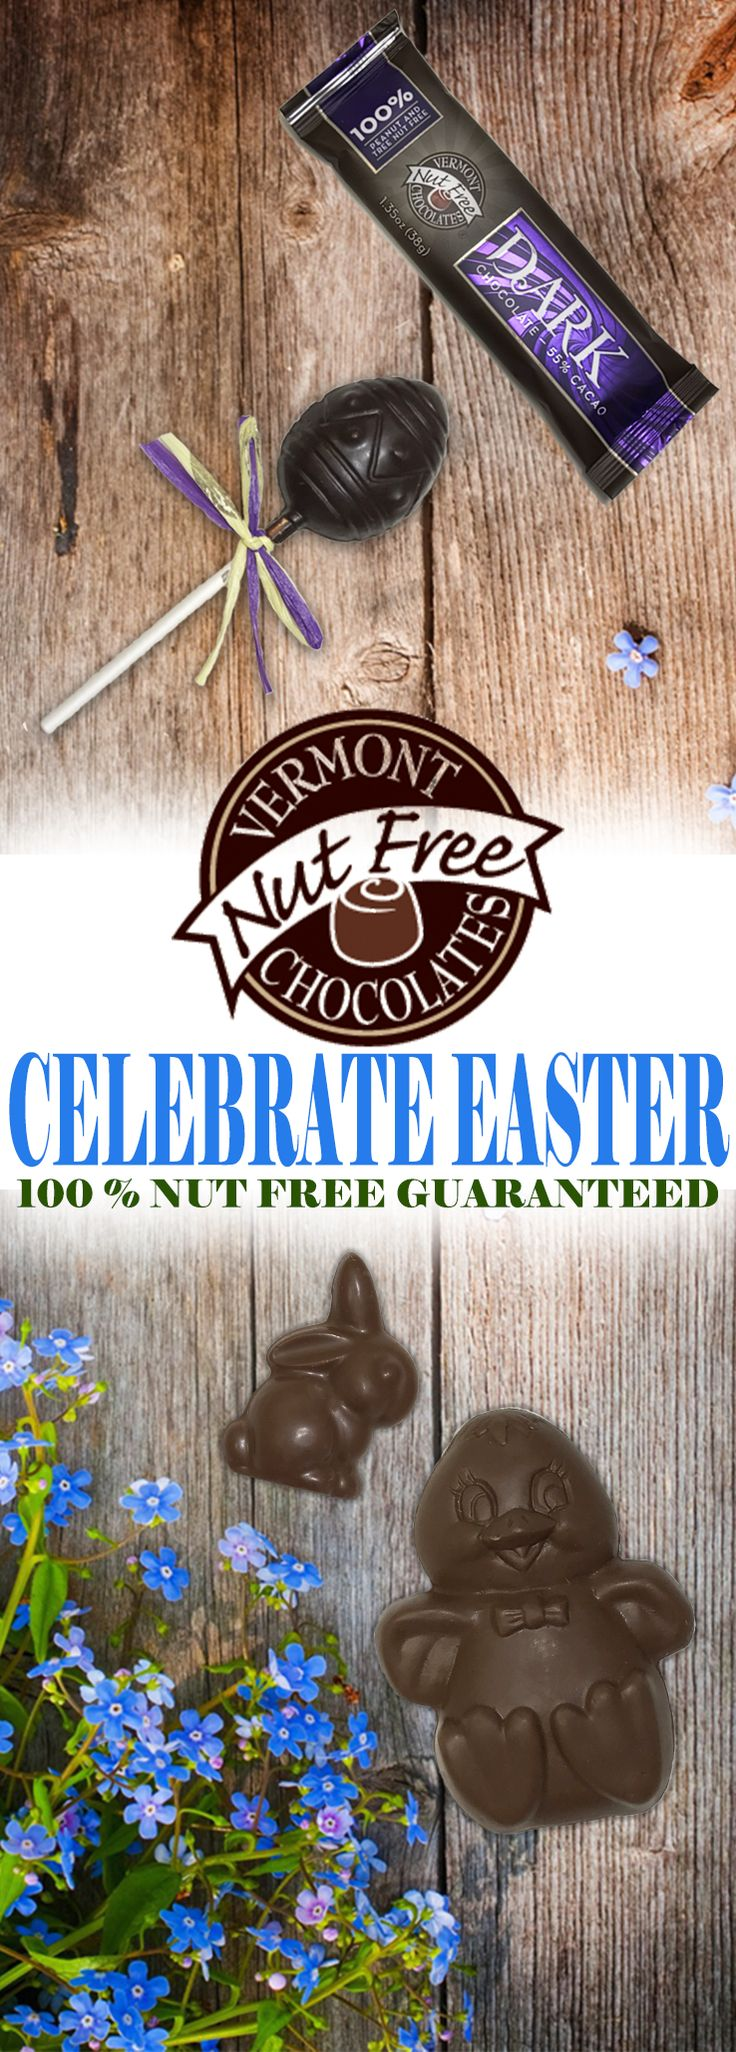 17 best easter images on pinterest nut free vermont and peanut celebrate easter this year with vermont nut free chocolates peanut and tree nut free chocolates negle Image collections